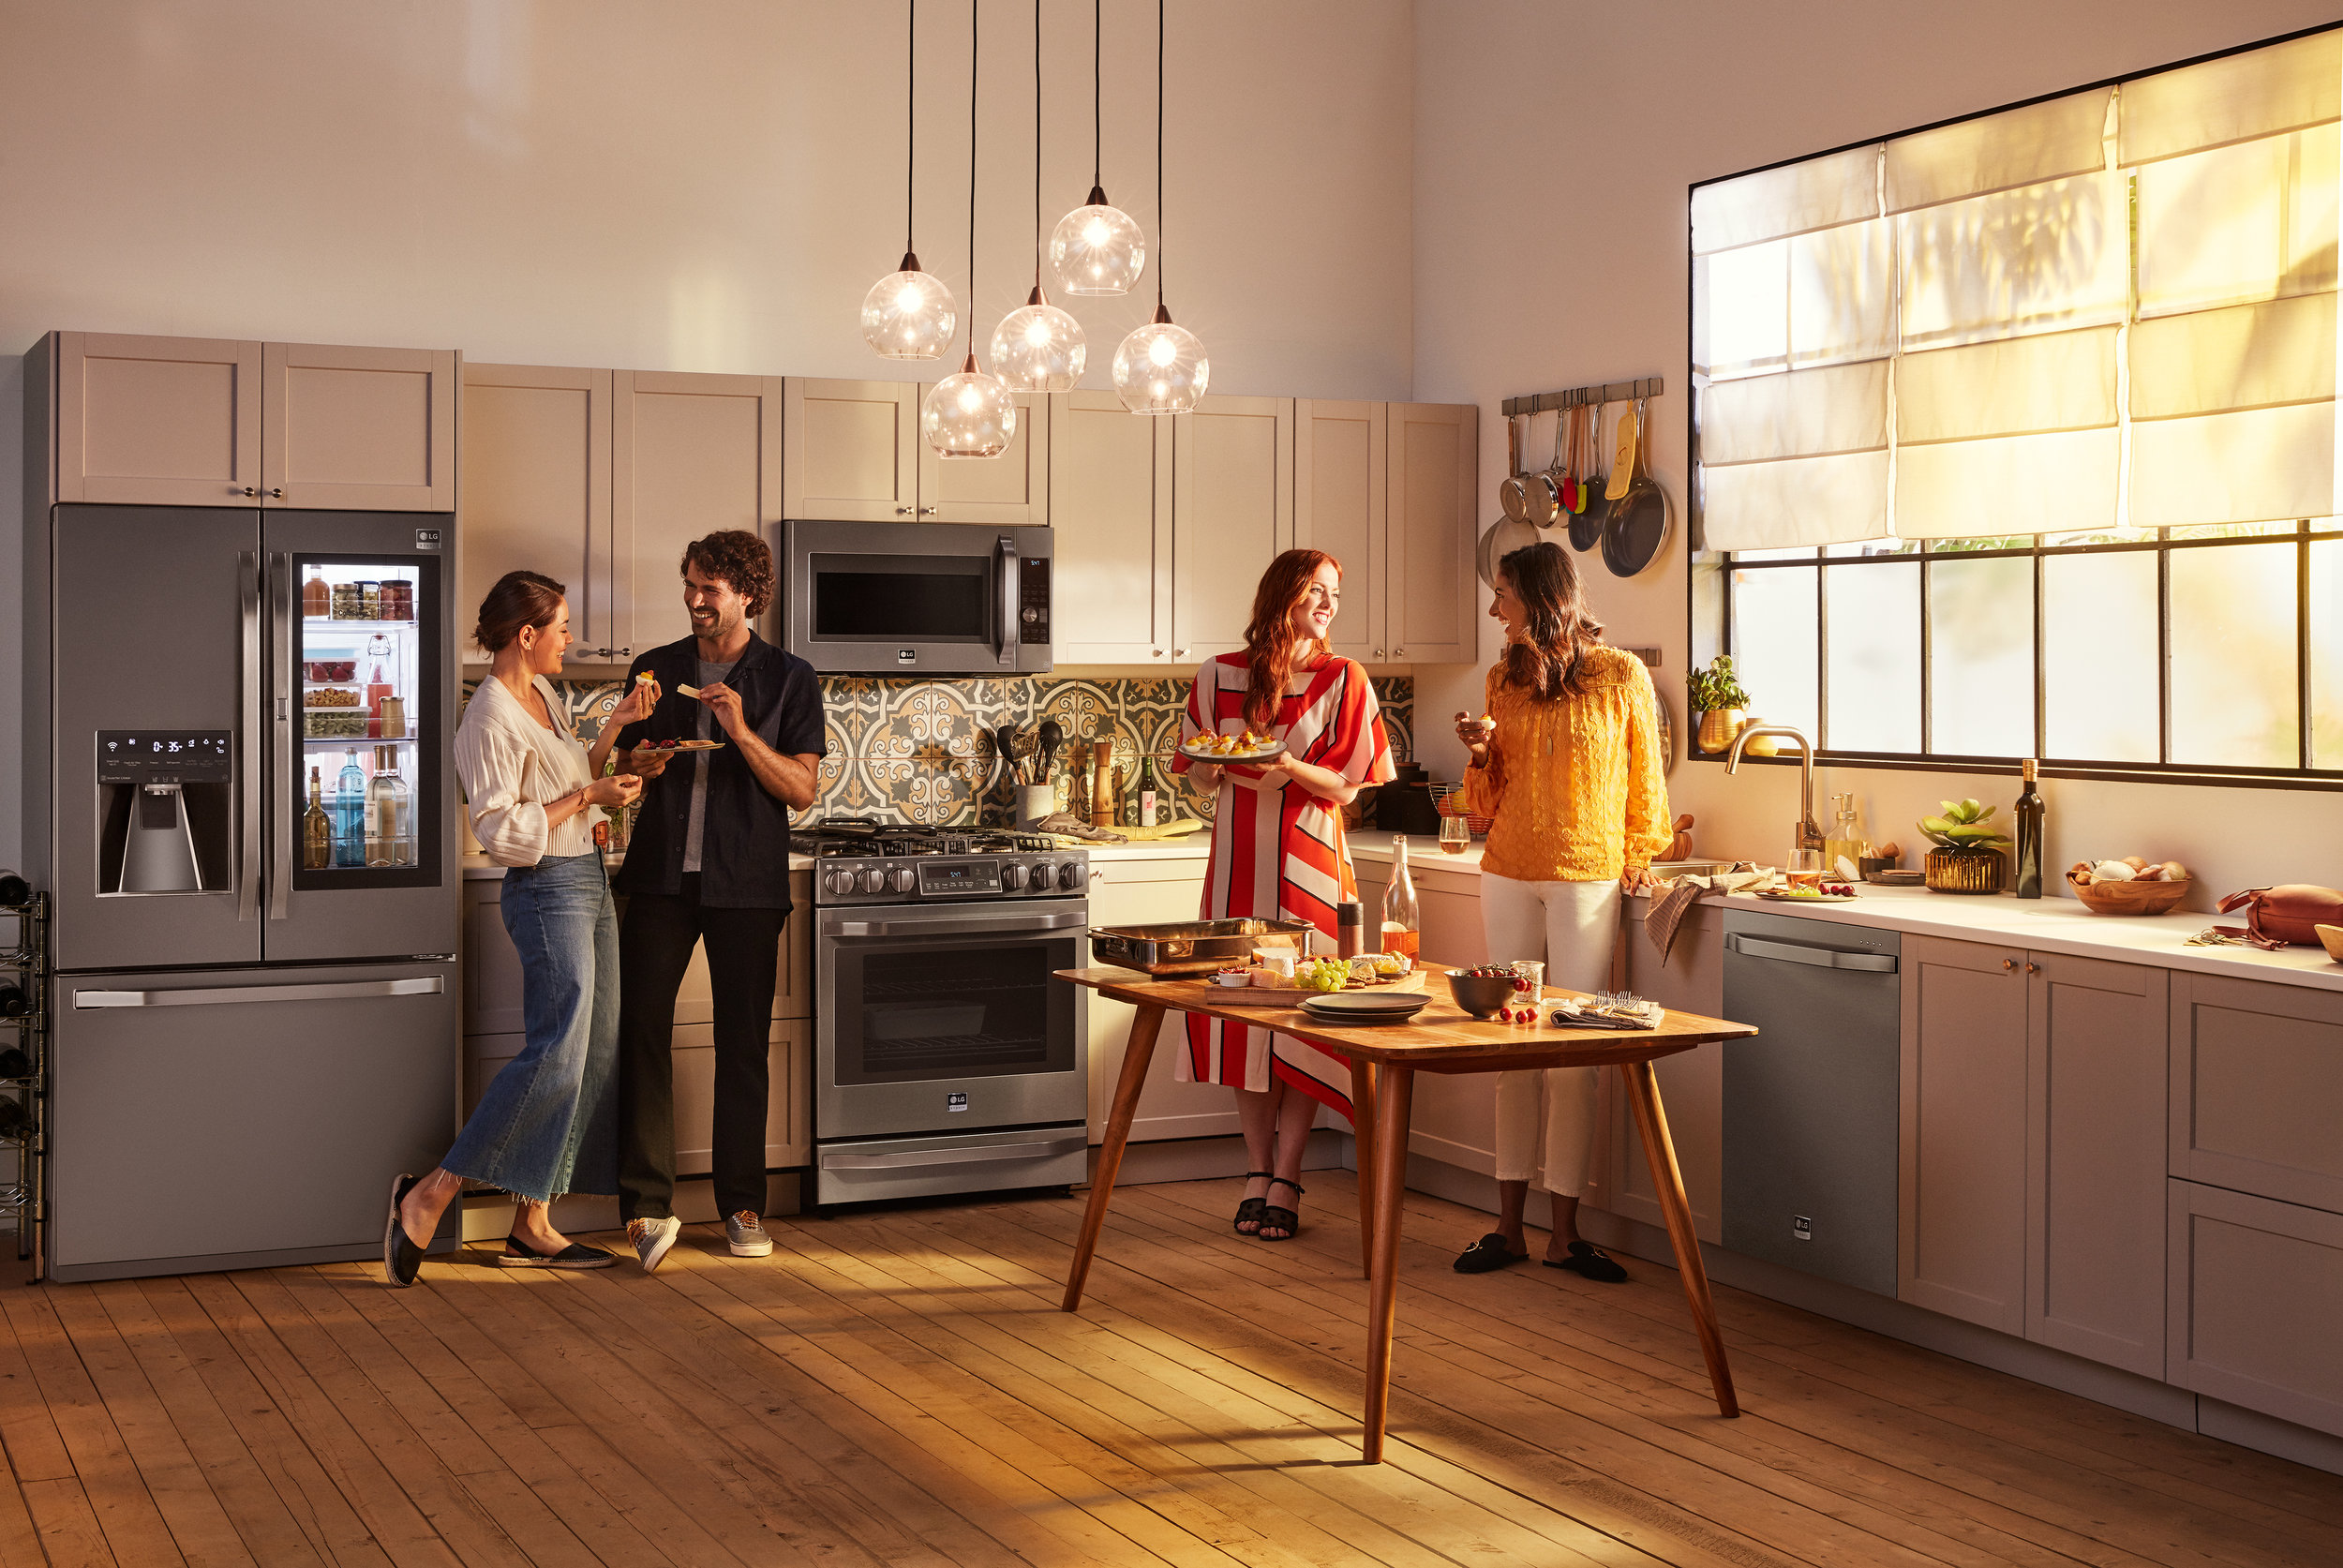 LG-STUDIO_CAMPAIGN_Freestanding_BSTS_Guests_for_a_night_in_0995_I_web.jpg